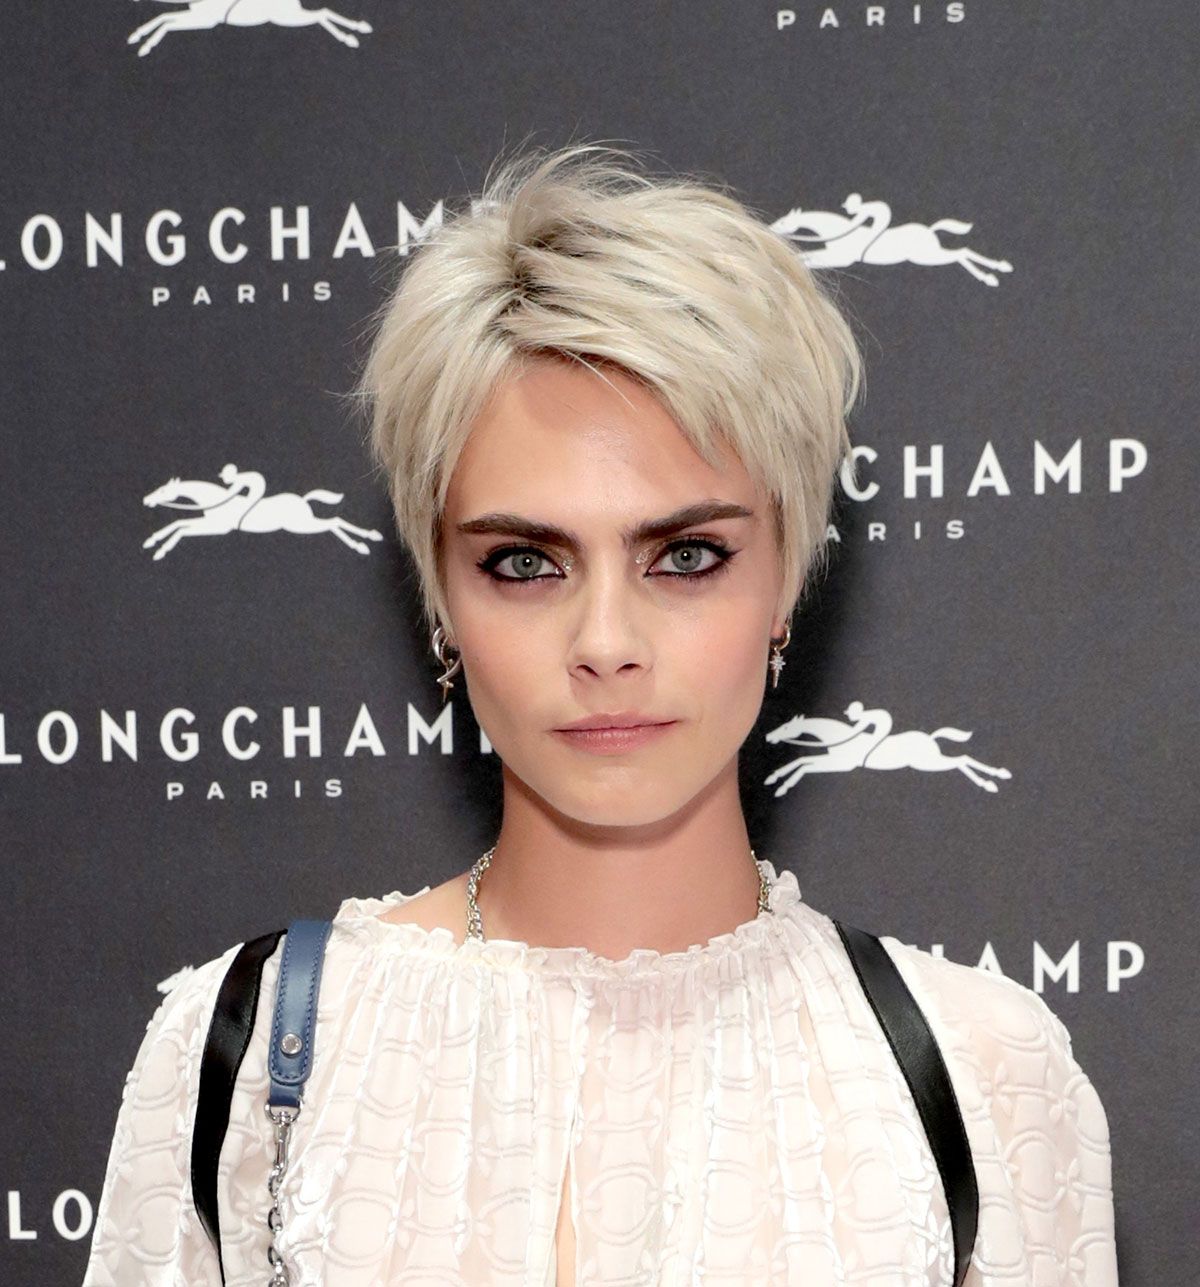 Cara Delevingne's Tousled Pixie